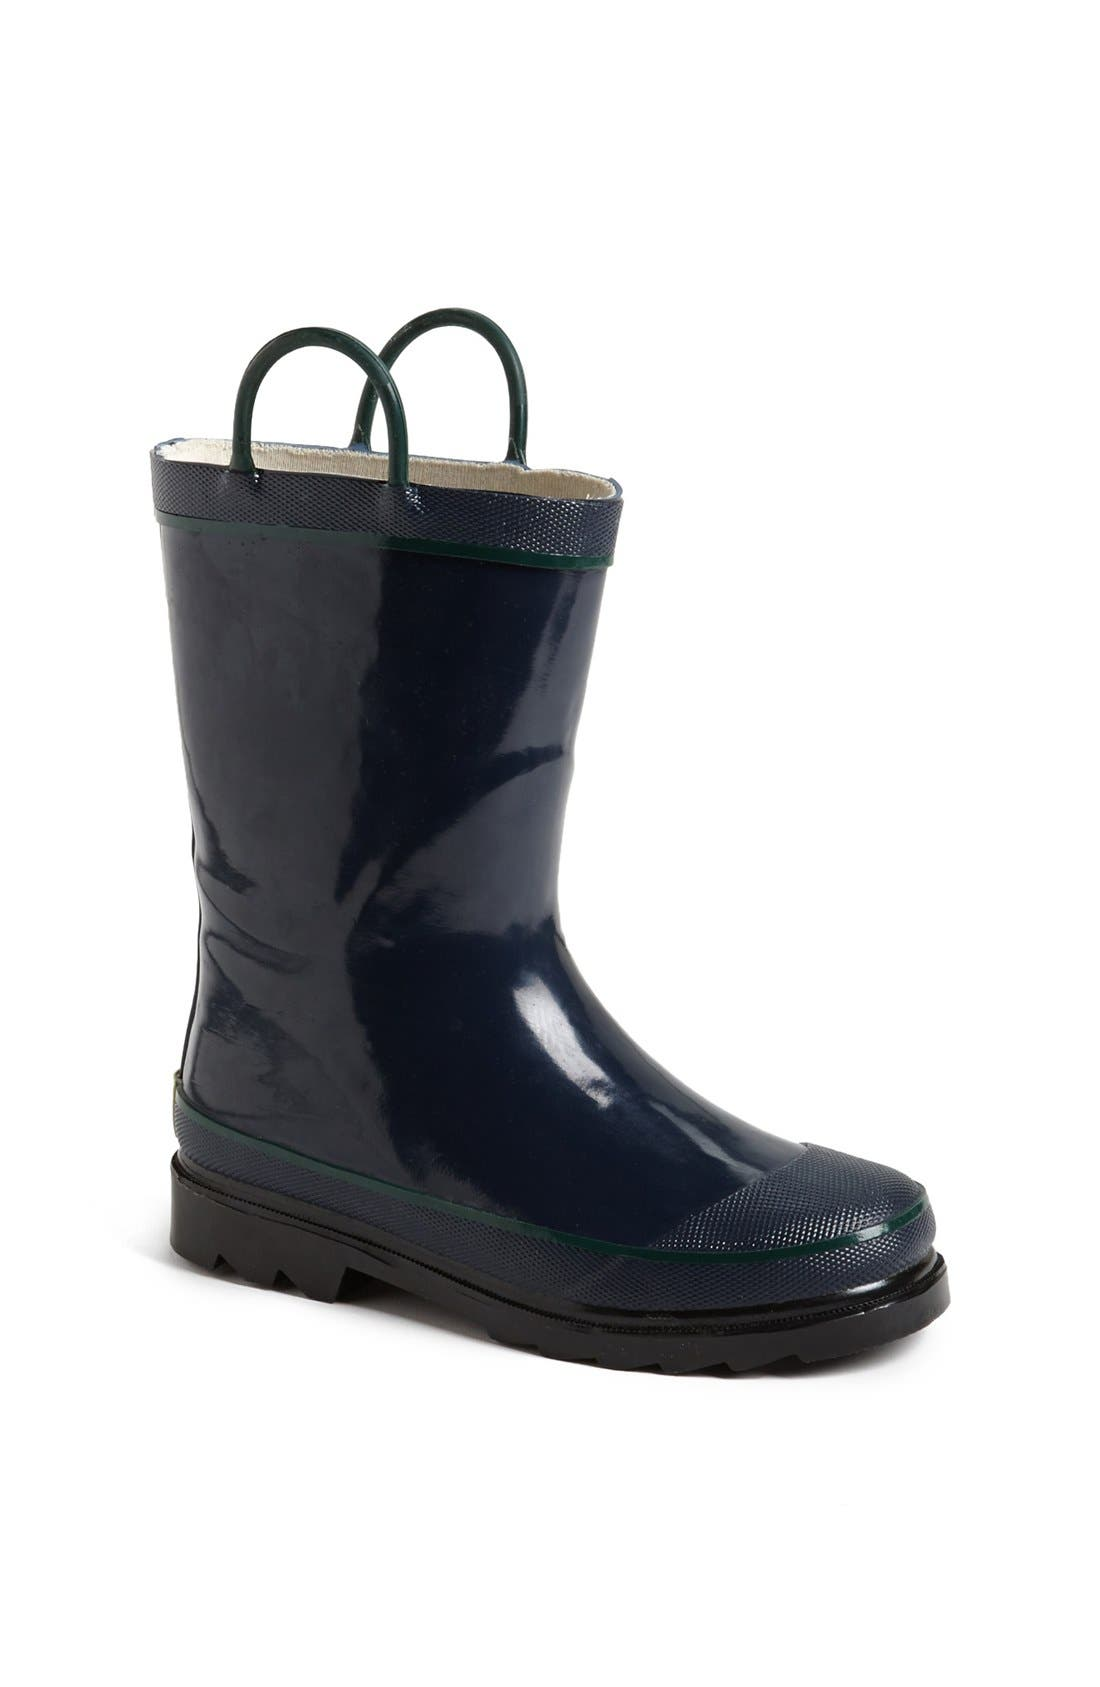 Western Chief Firechief 2 Waterproof Rain Boot